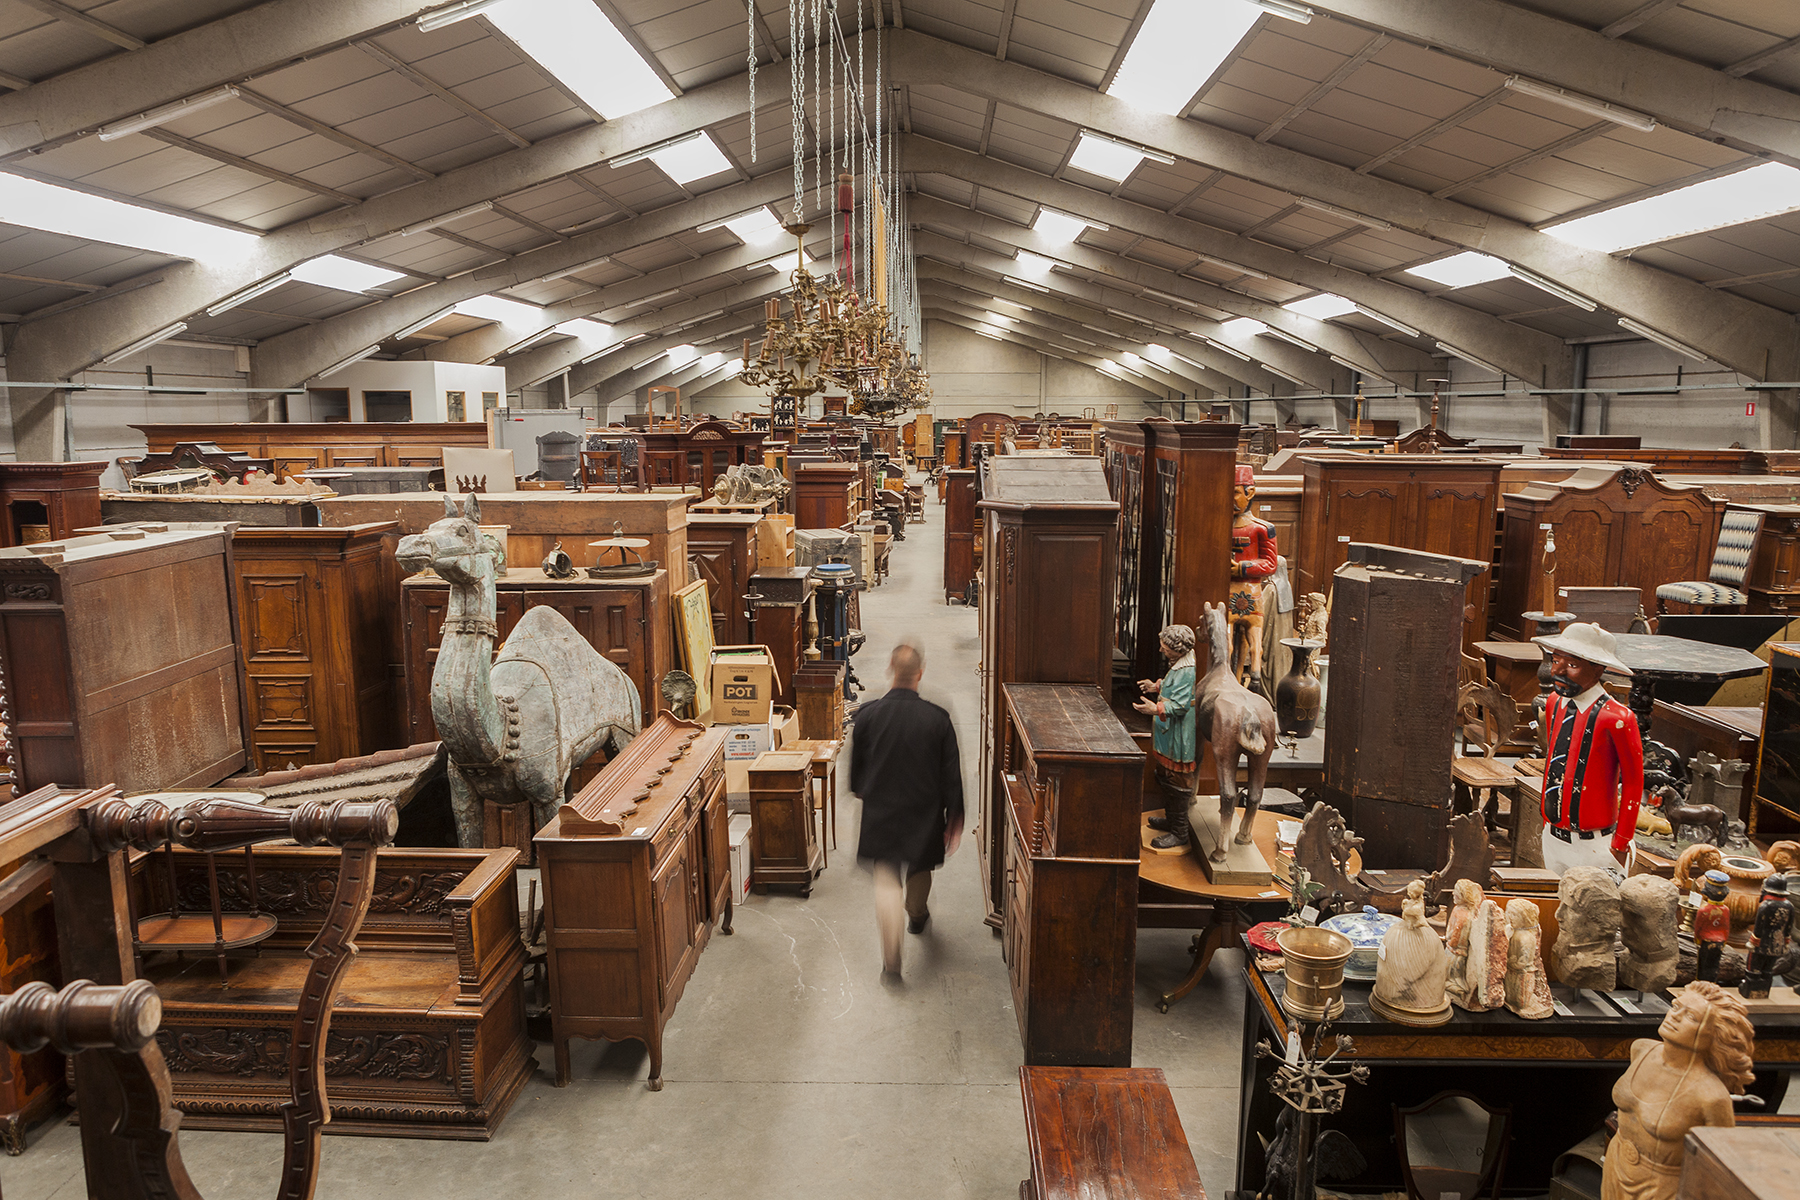 Wholesale Antique Shopping at an Antique Warehouse in Belgium